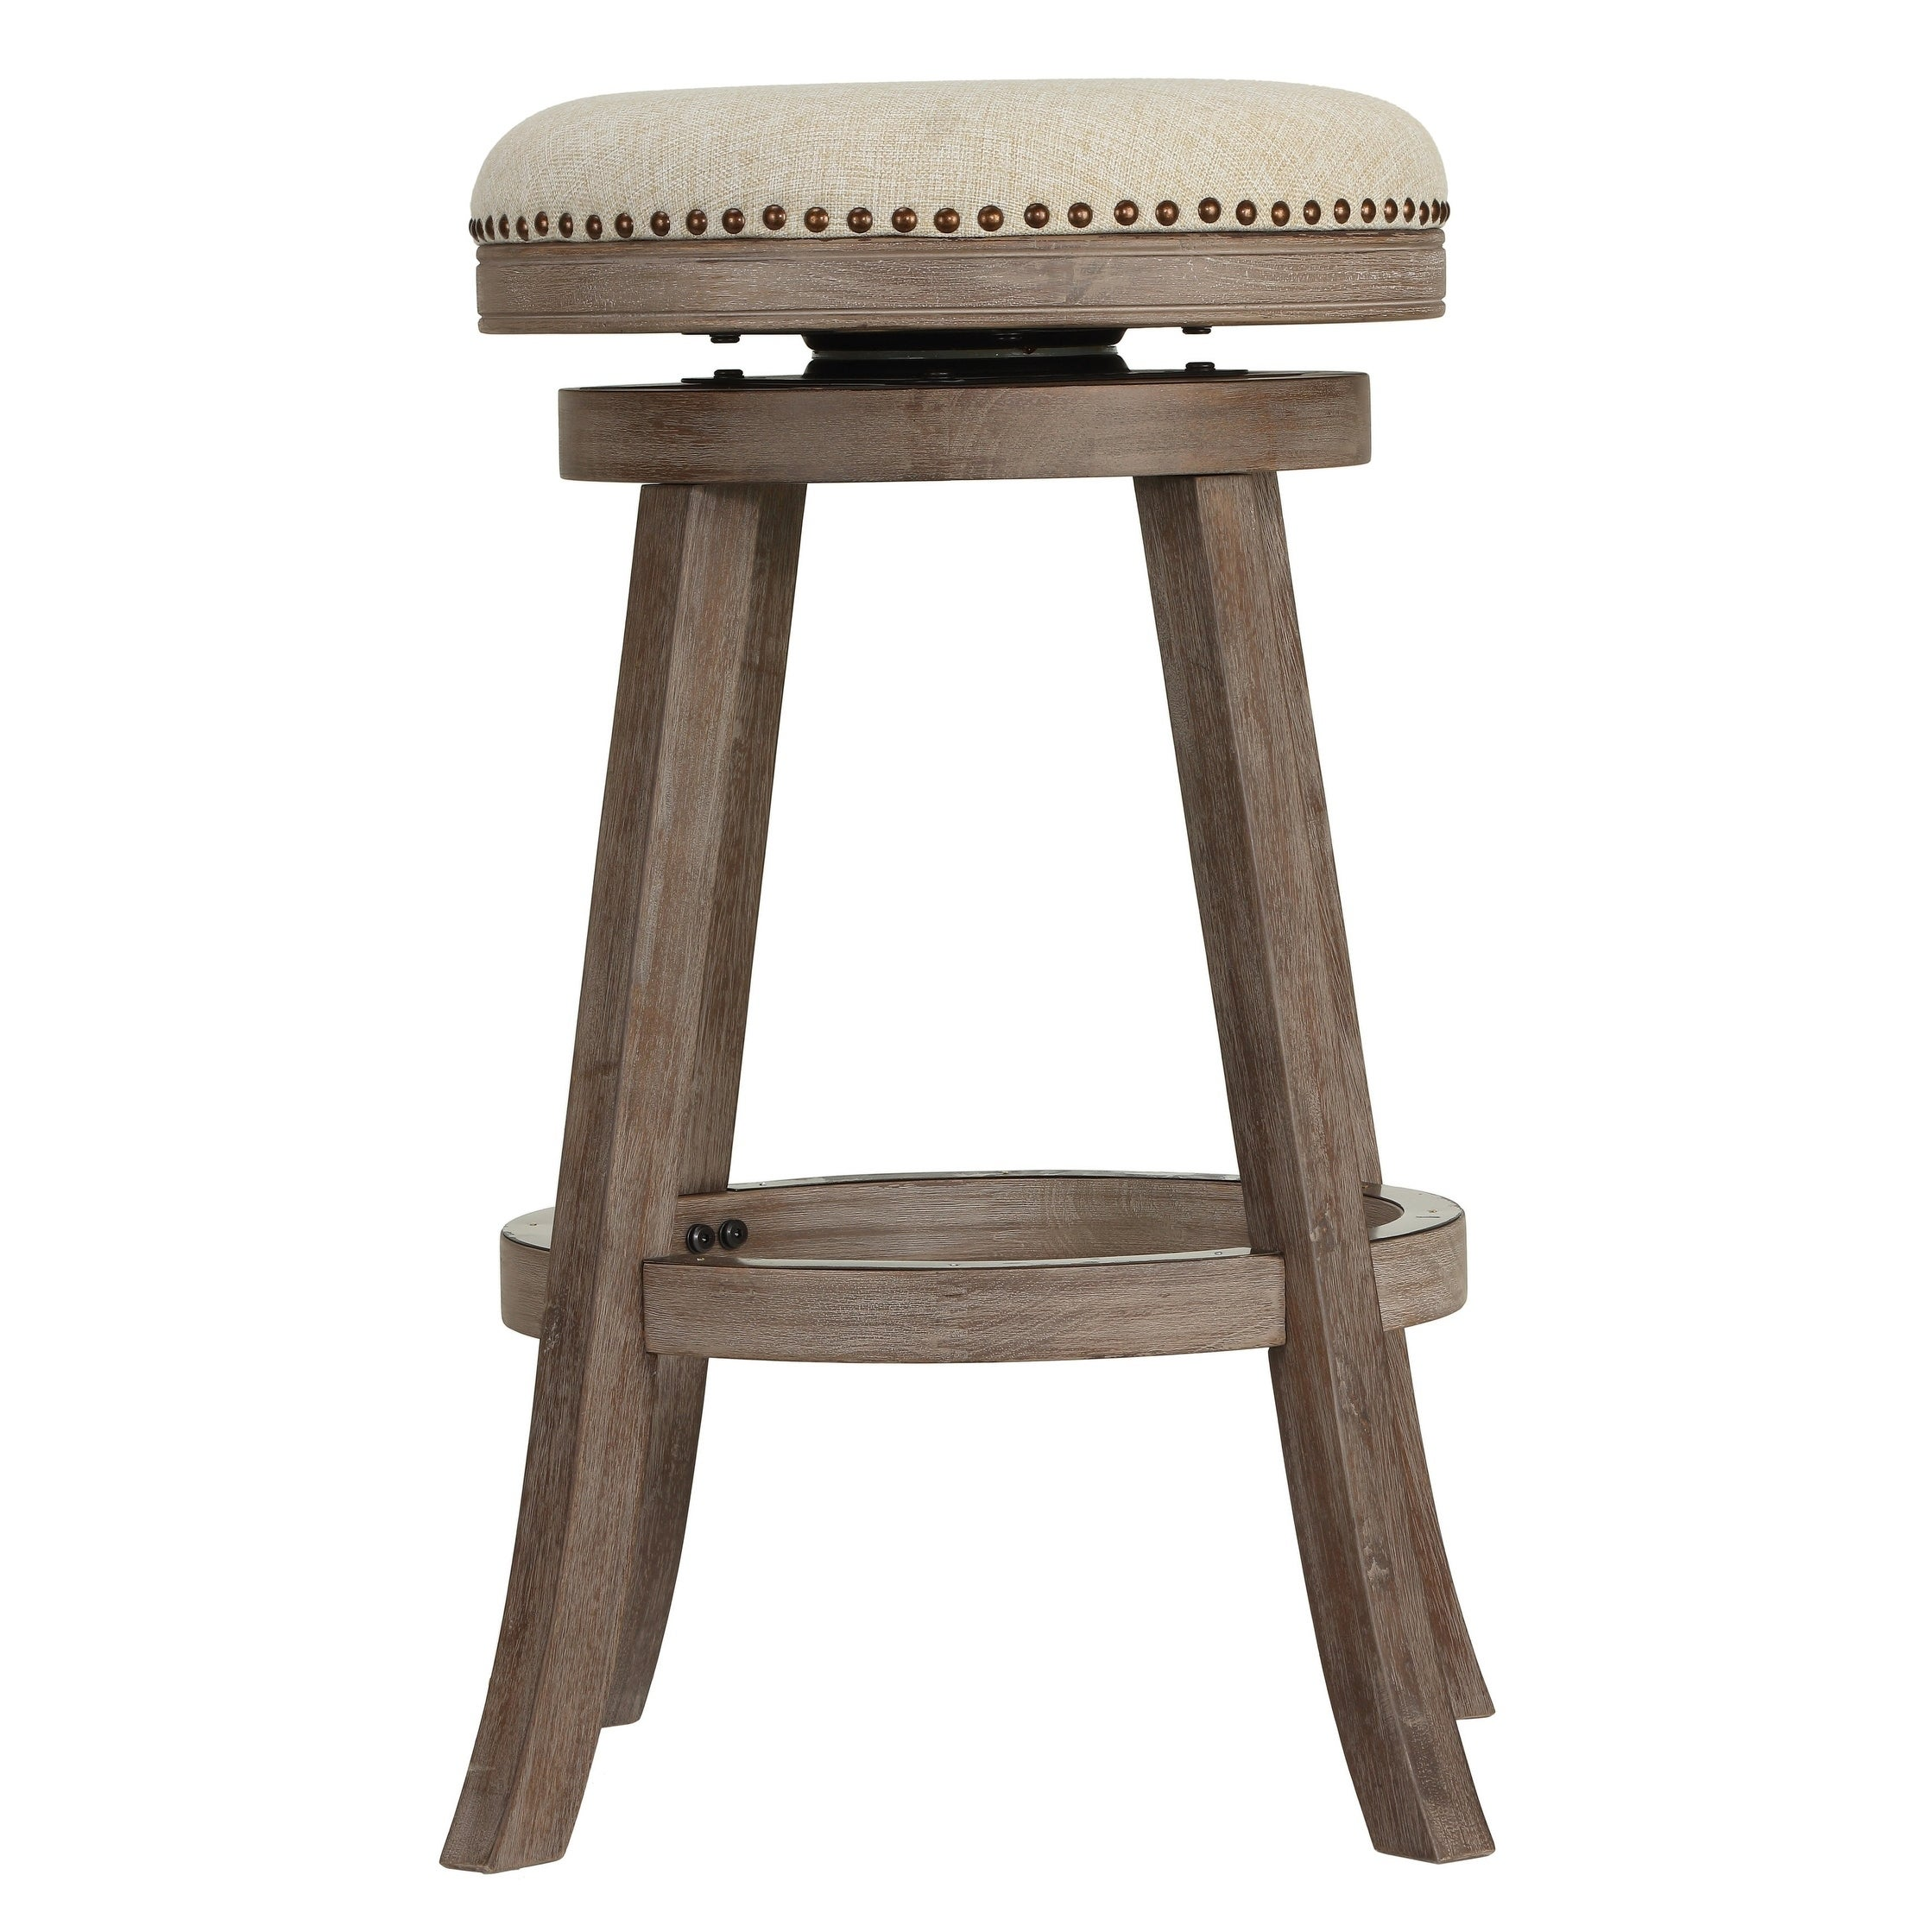 Fabulous The Gray Barn Mcniven Backless Swivel Bar Stool In Solid Oak Wood And Beige Fabric Lamtechconsult Wood Chair Design Ideas Lamtechconsultcom